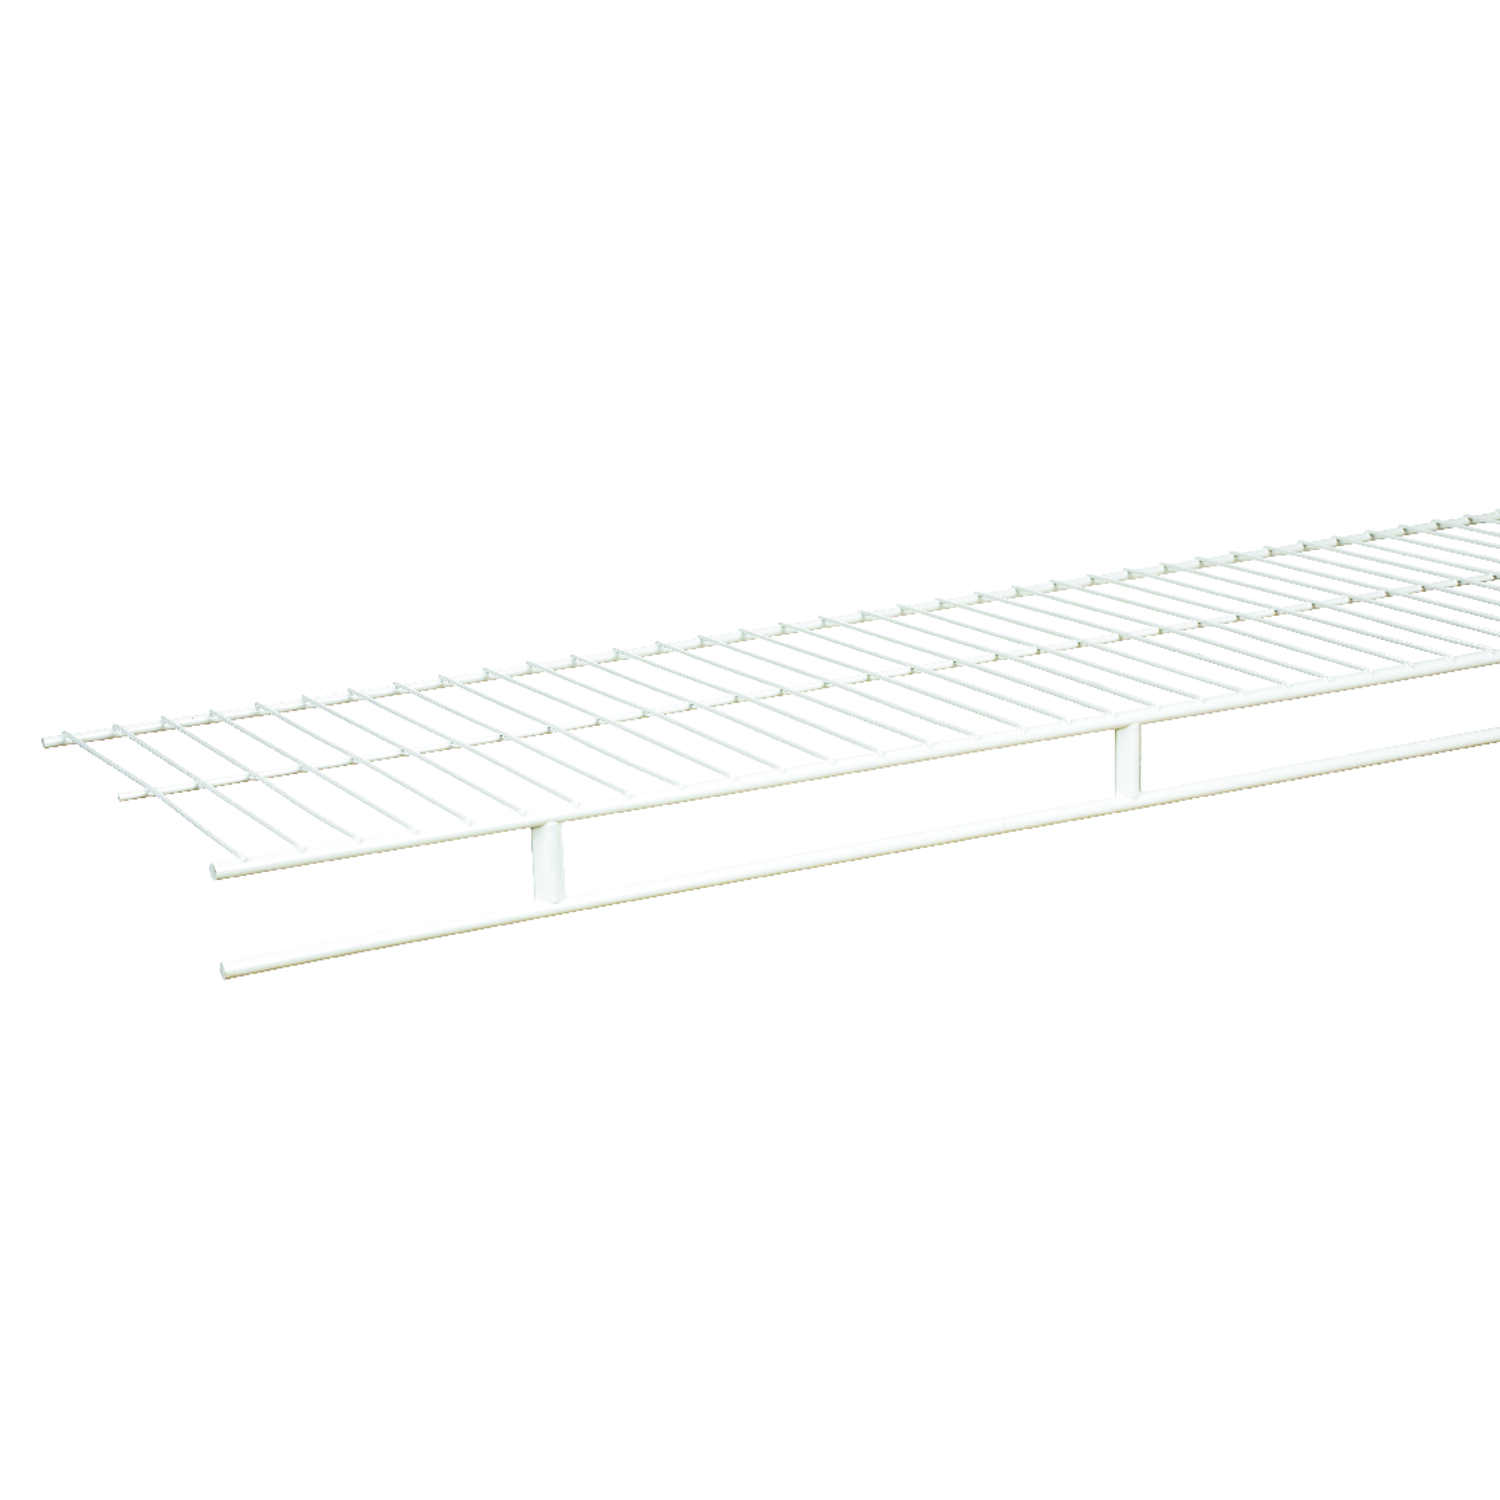 Rubbermaid  12 in. W x 1.9 in. L x 96 in. H Steel  1 each Wardrobe Shelf